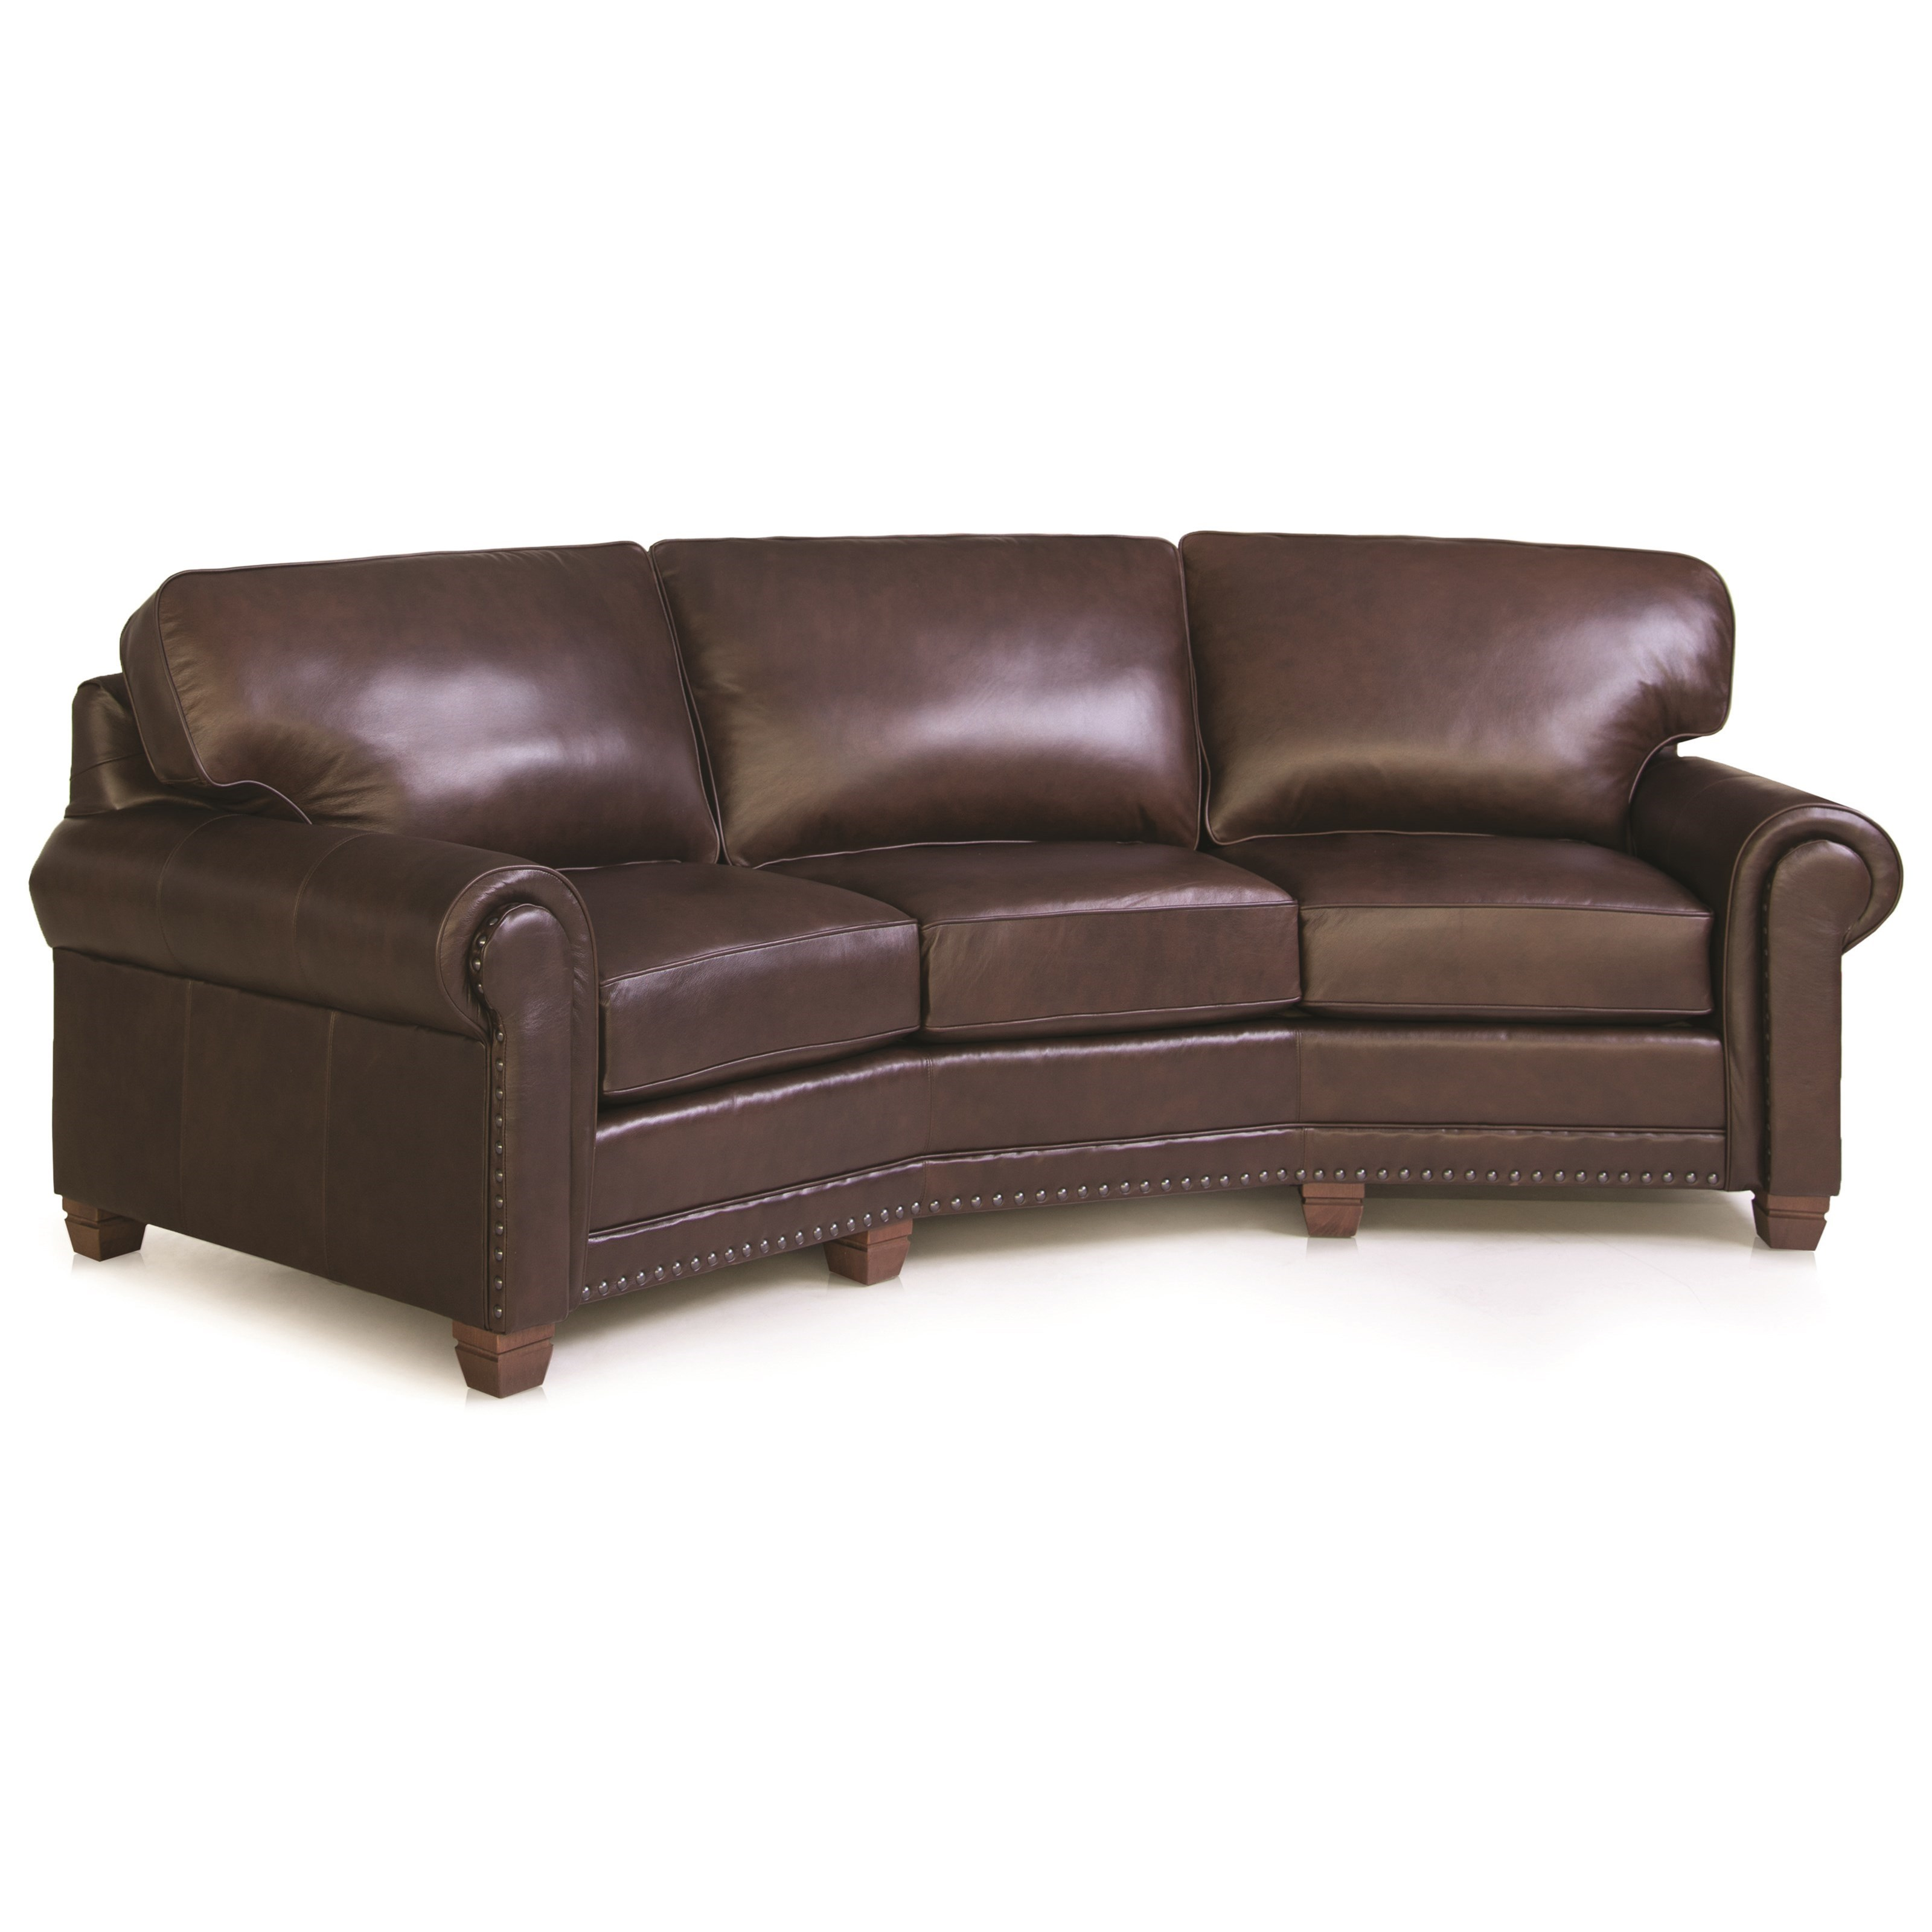 393 Conversation Sofa by Smith Brothers at Rooms for Less